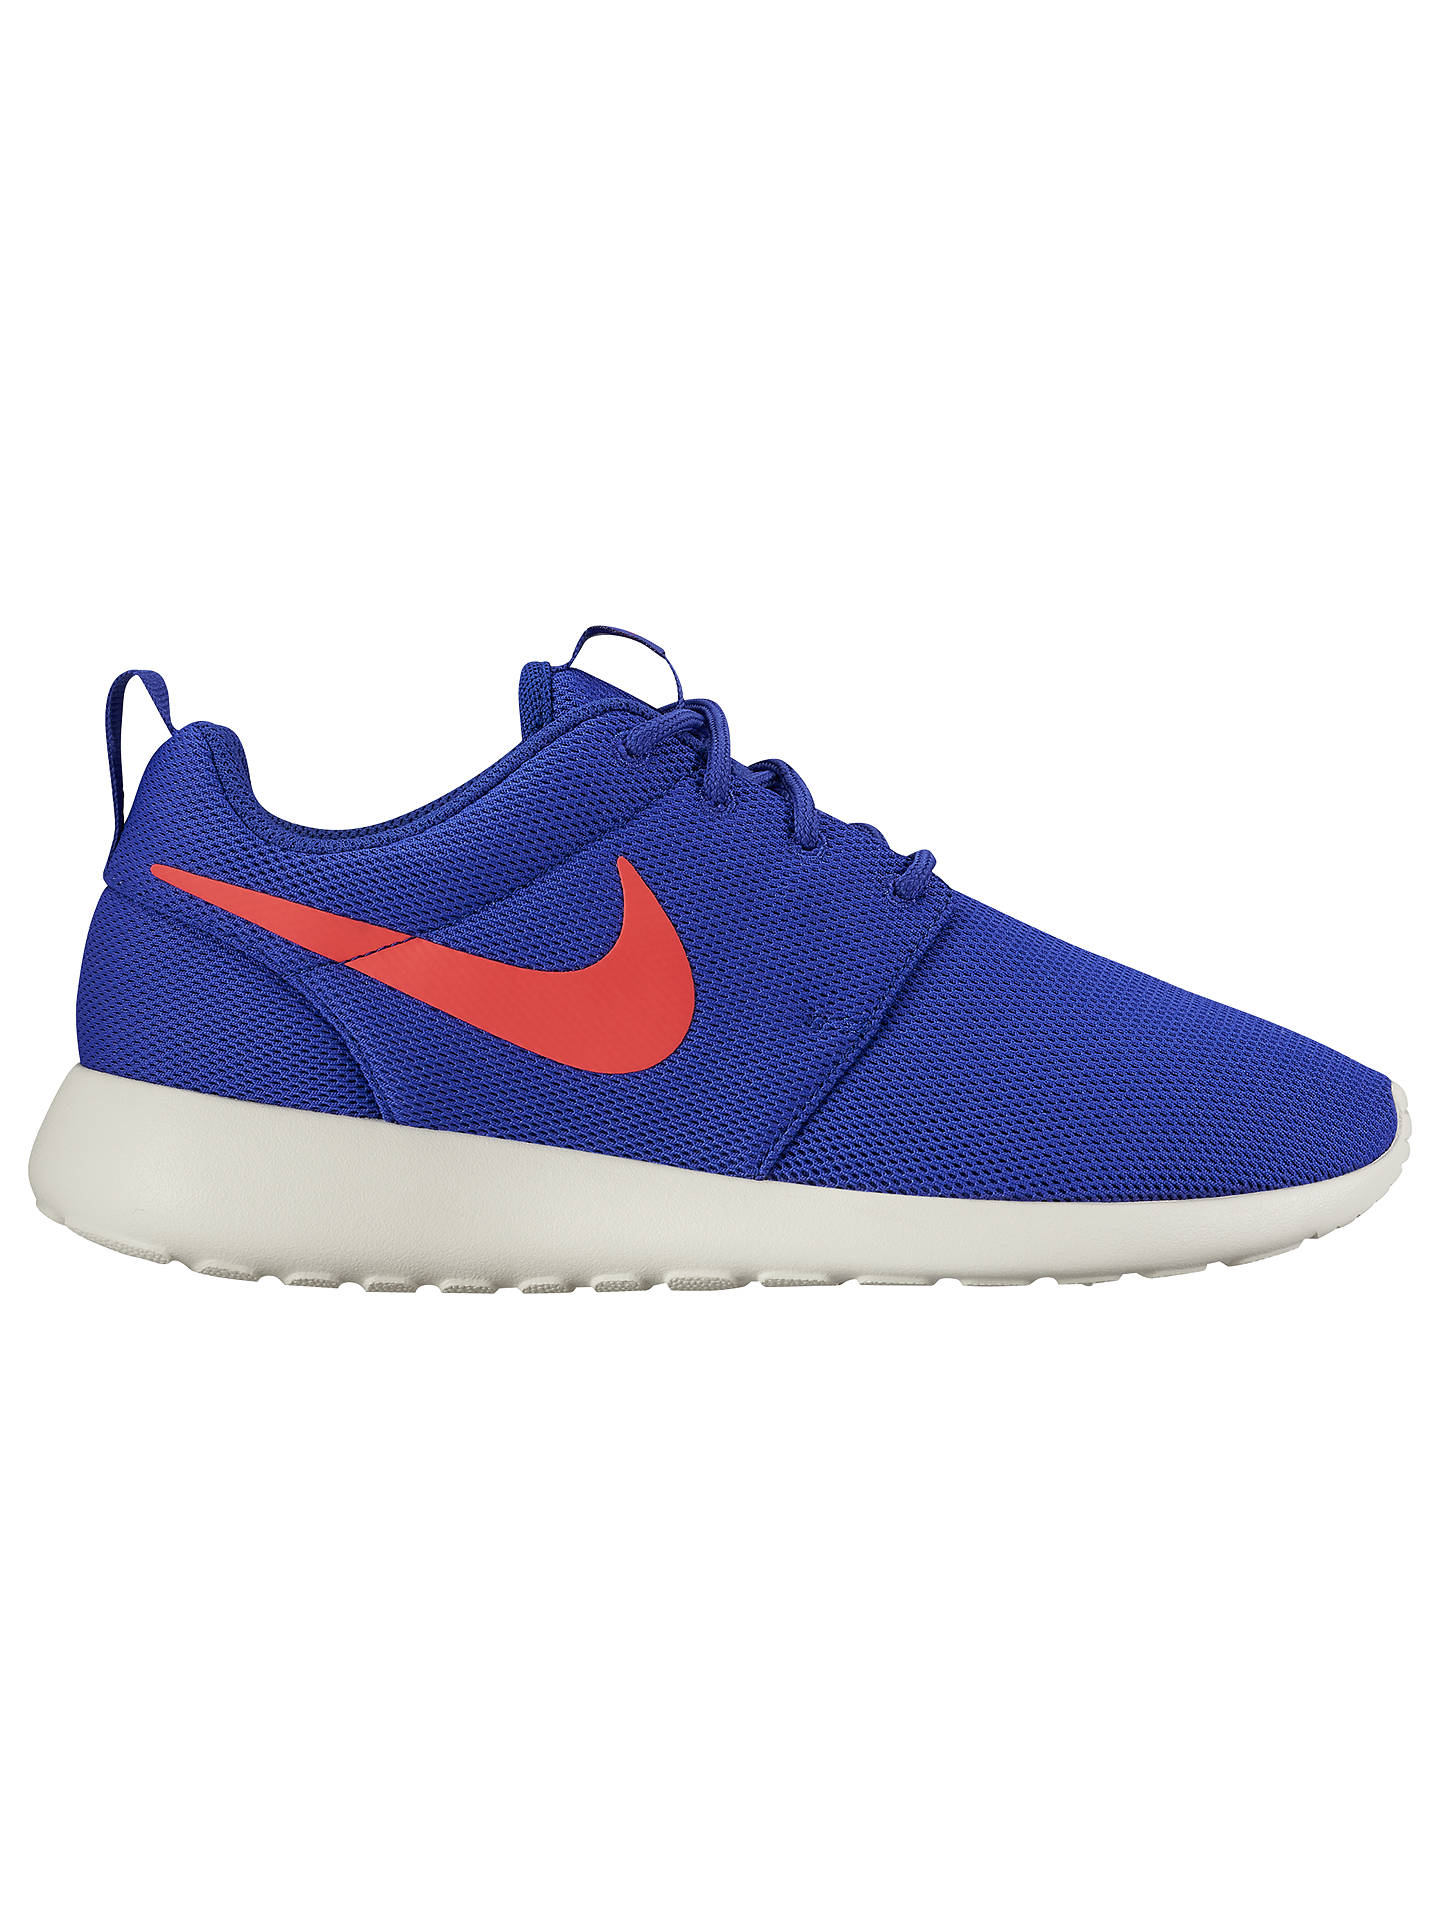 584f82d8dd12 closeout nike roshe one womens shoe ee767 e3341  ireland buynike roshe one  womens trainers concord ember glow 4 online at johnlewis. a0fd5 8f0ce